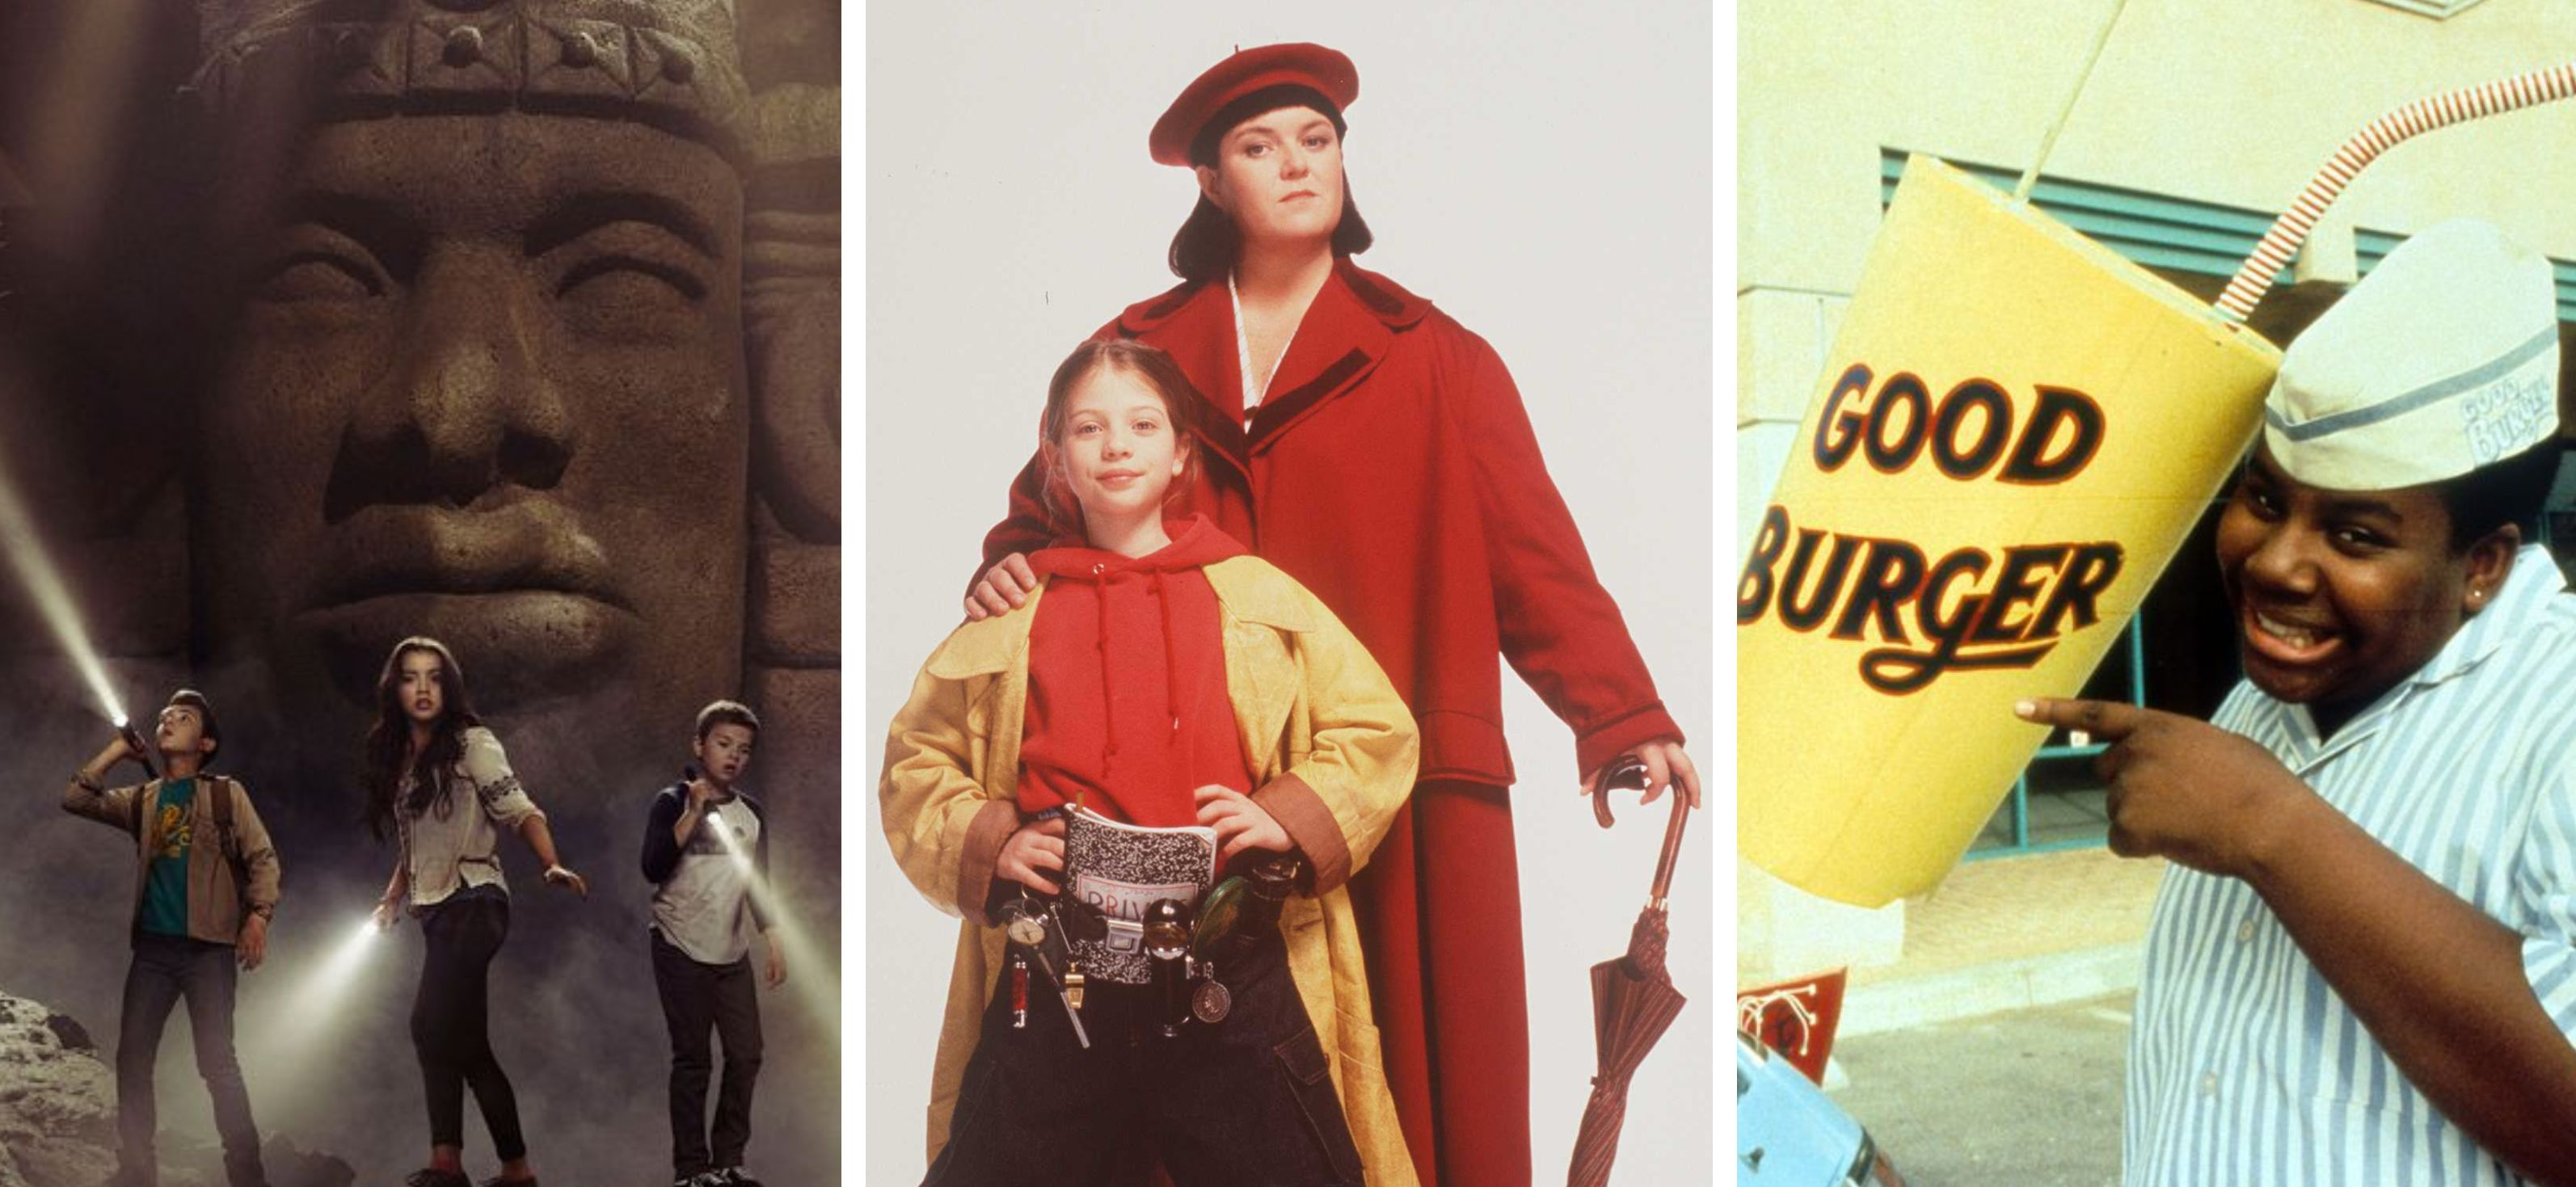 15 Best Nickelodeon Movies - Our Favorite Nickelodeon Produced Films